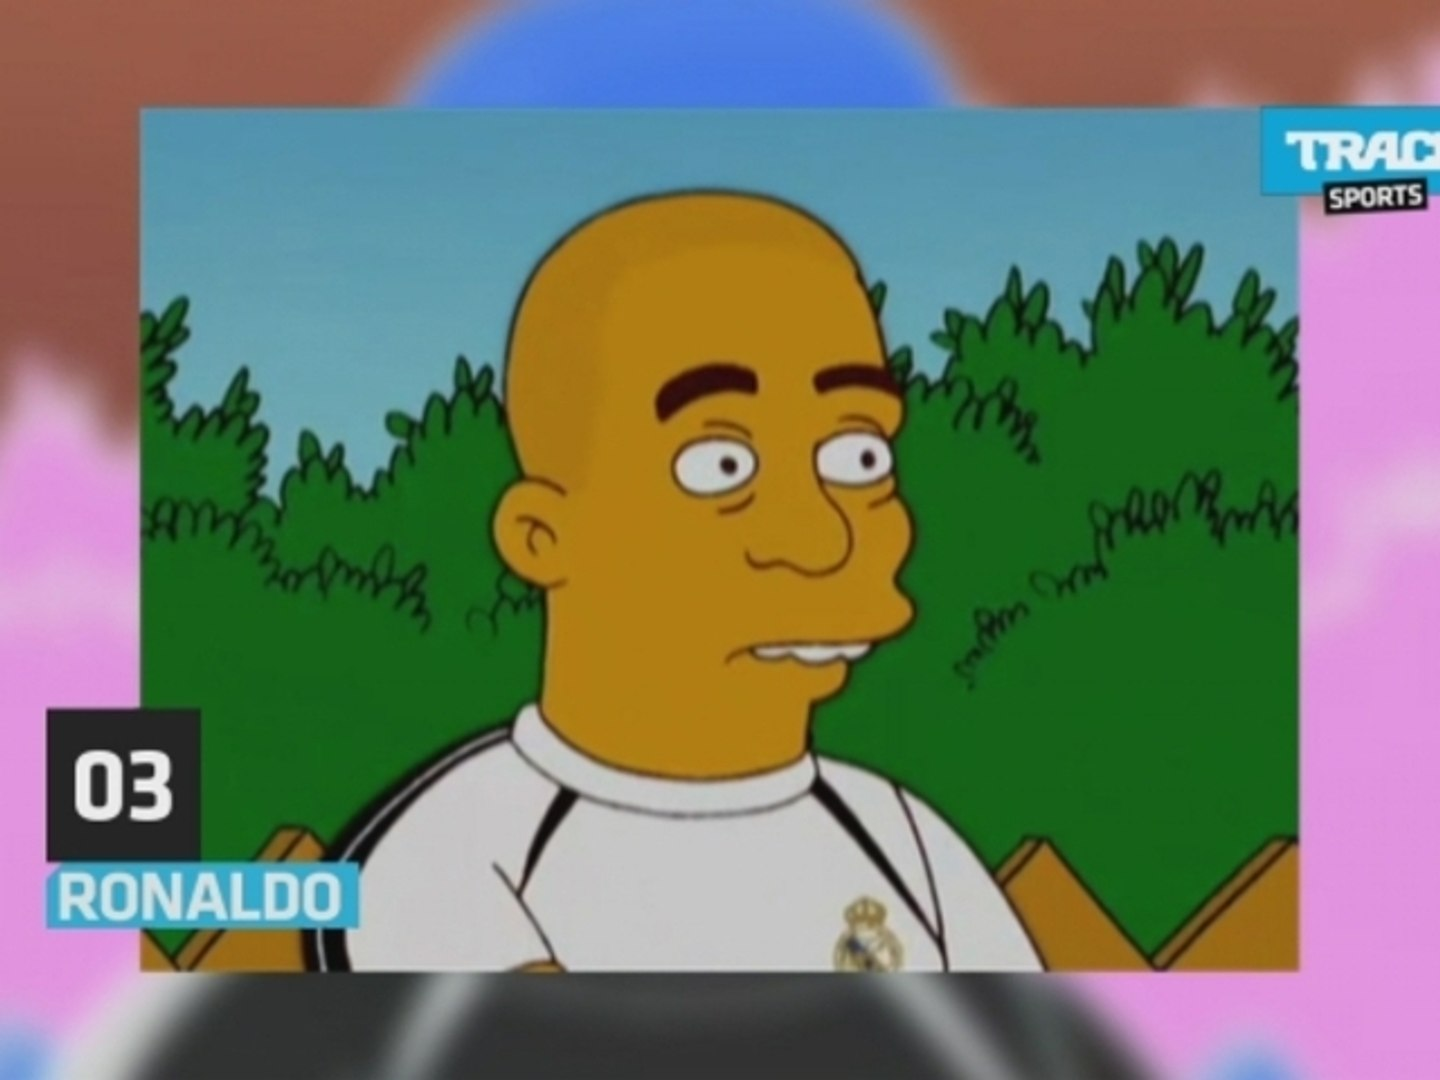 Top Gossip: The athletes in 'The Simpsons'